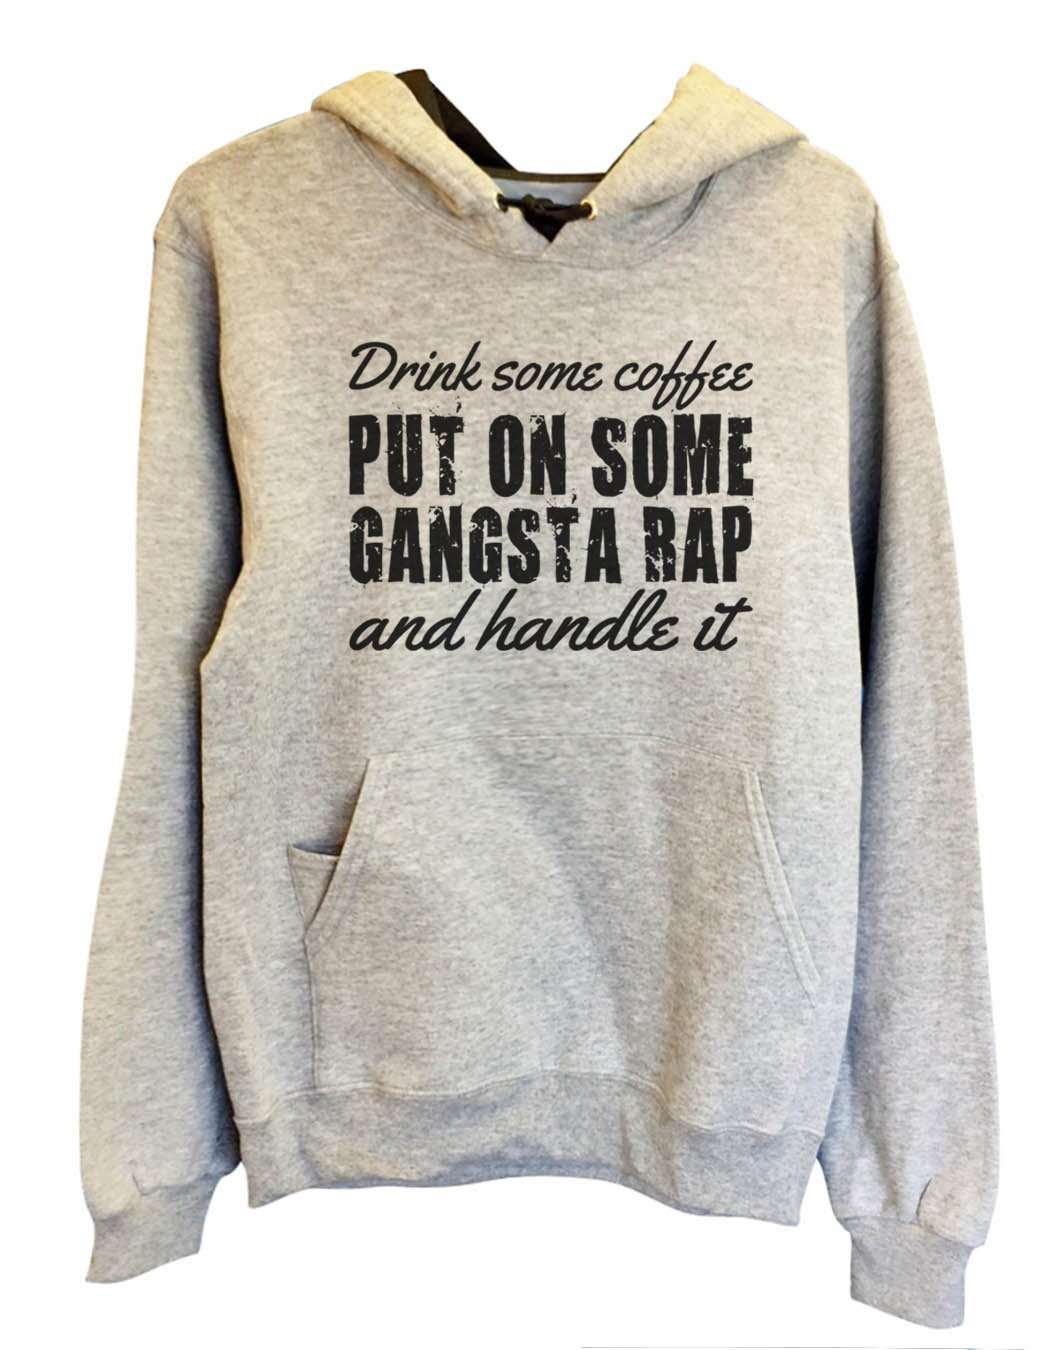 UNISEX HOODIE - Drink some coffee put on some gangsta rap and handle it - FUNNY MENS AND WOMENS HOODED SWEATSHIRTS - 956 Funny Shirt Small / Heather Grey